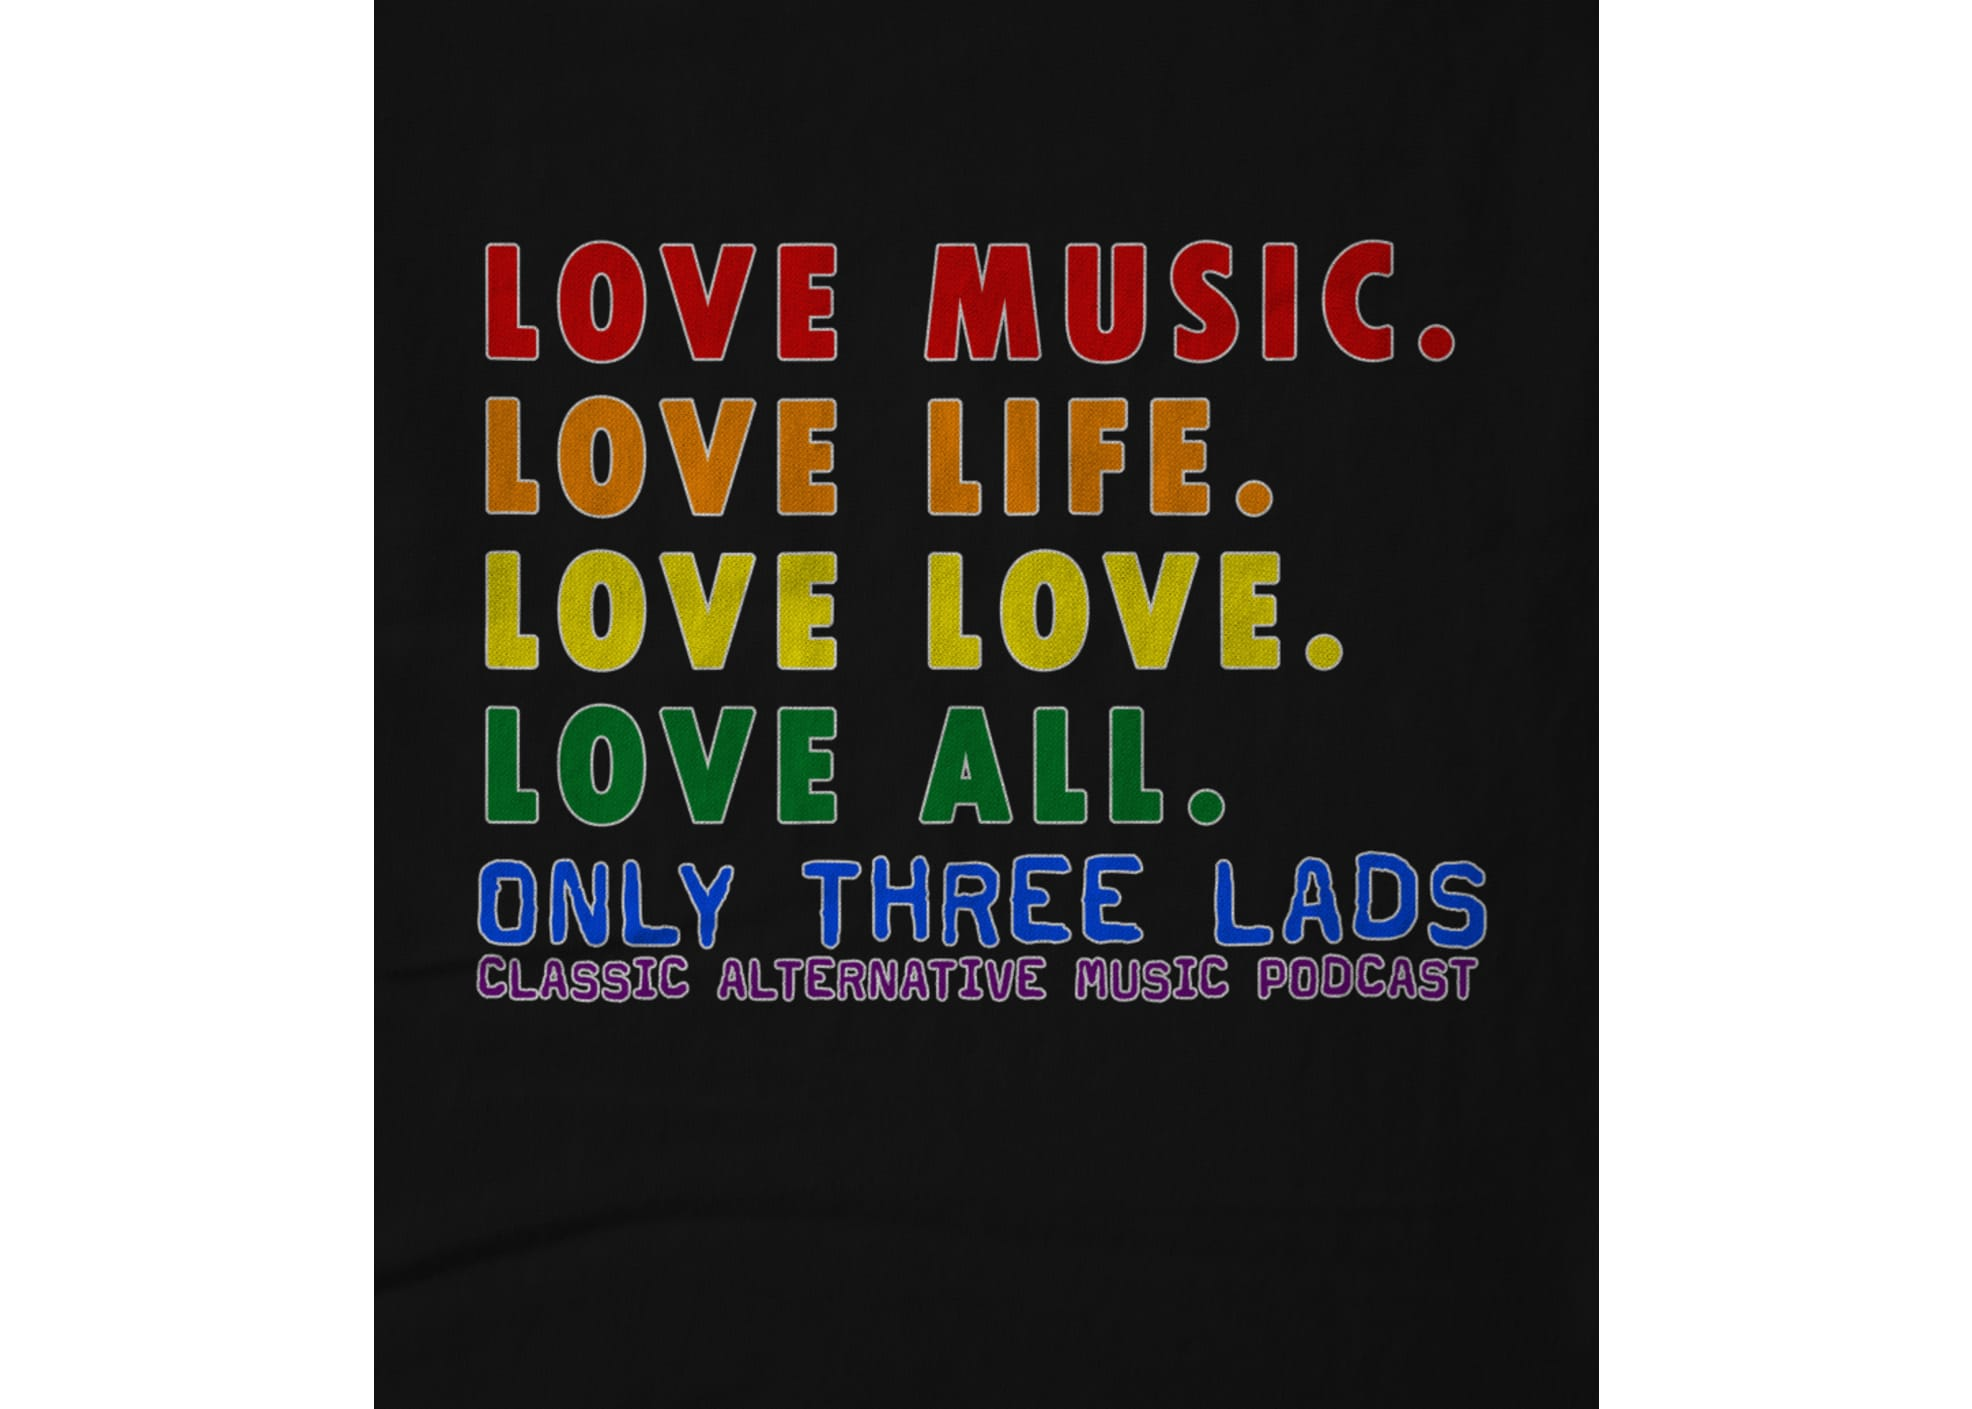 Only three lads love all   black 1623802411